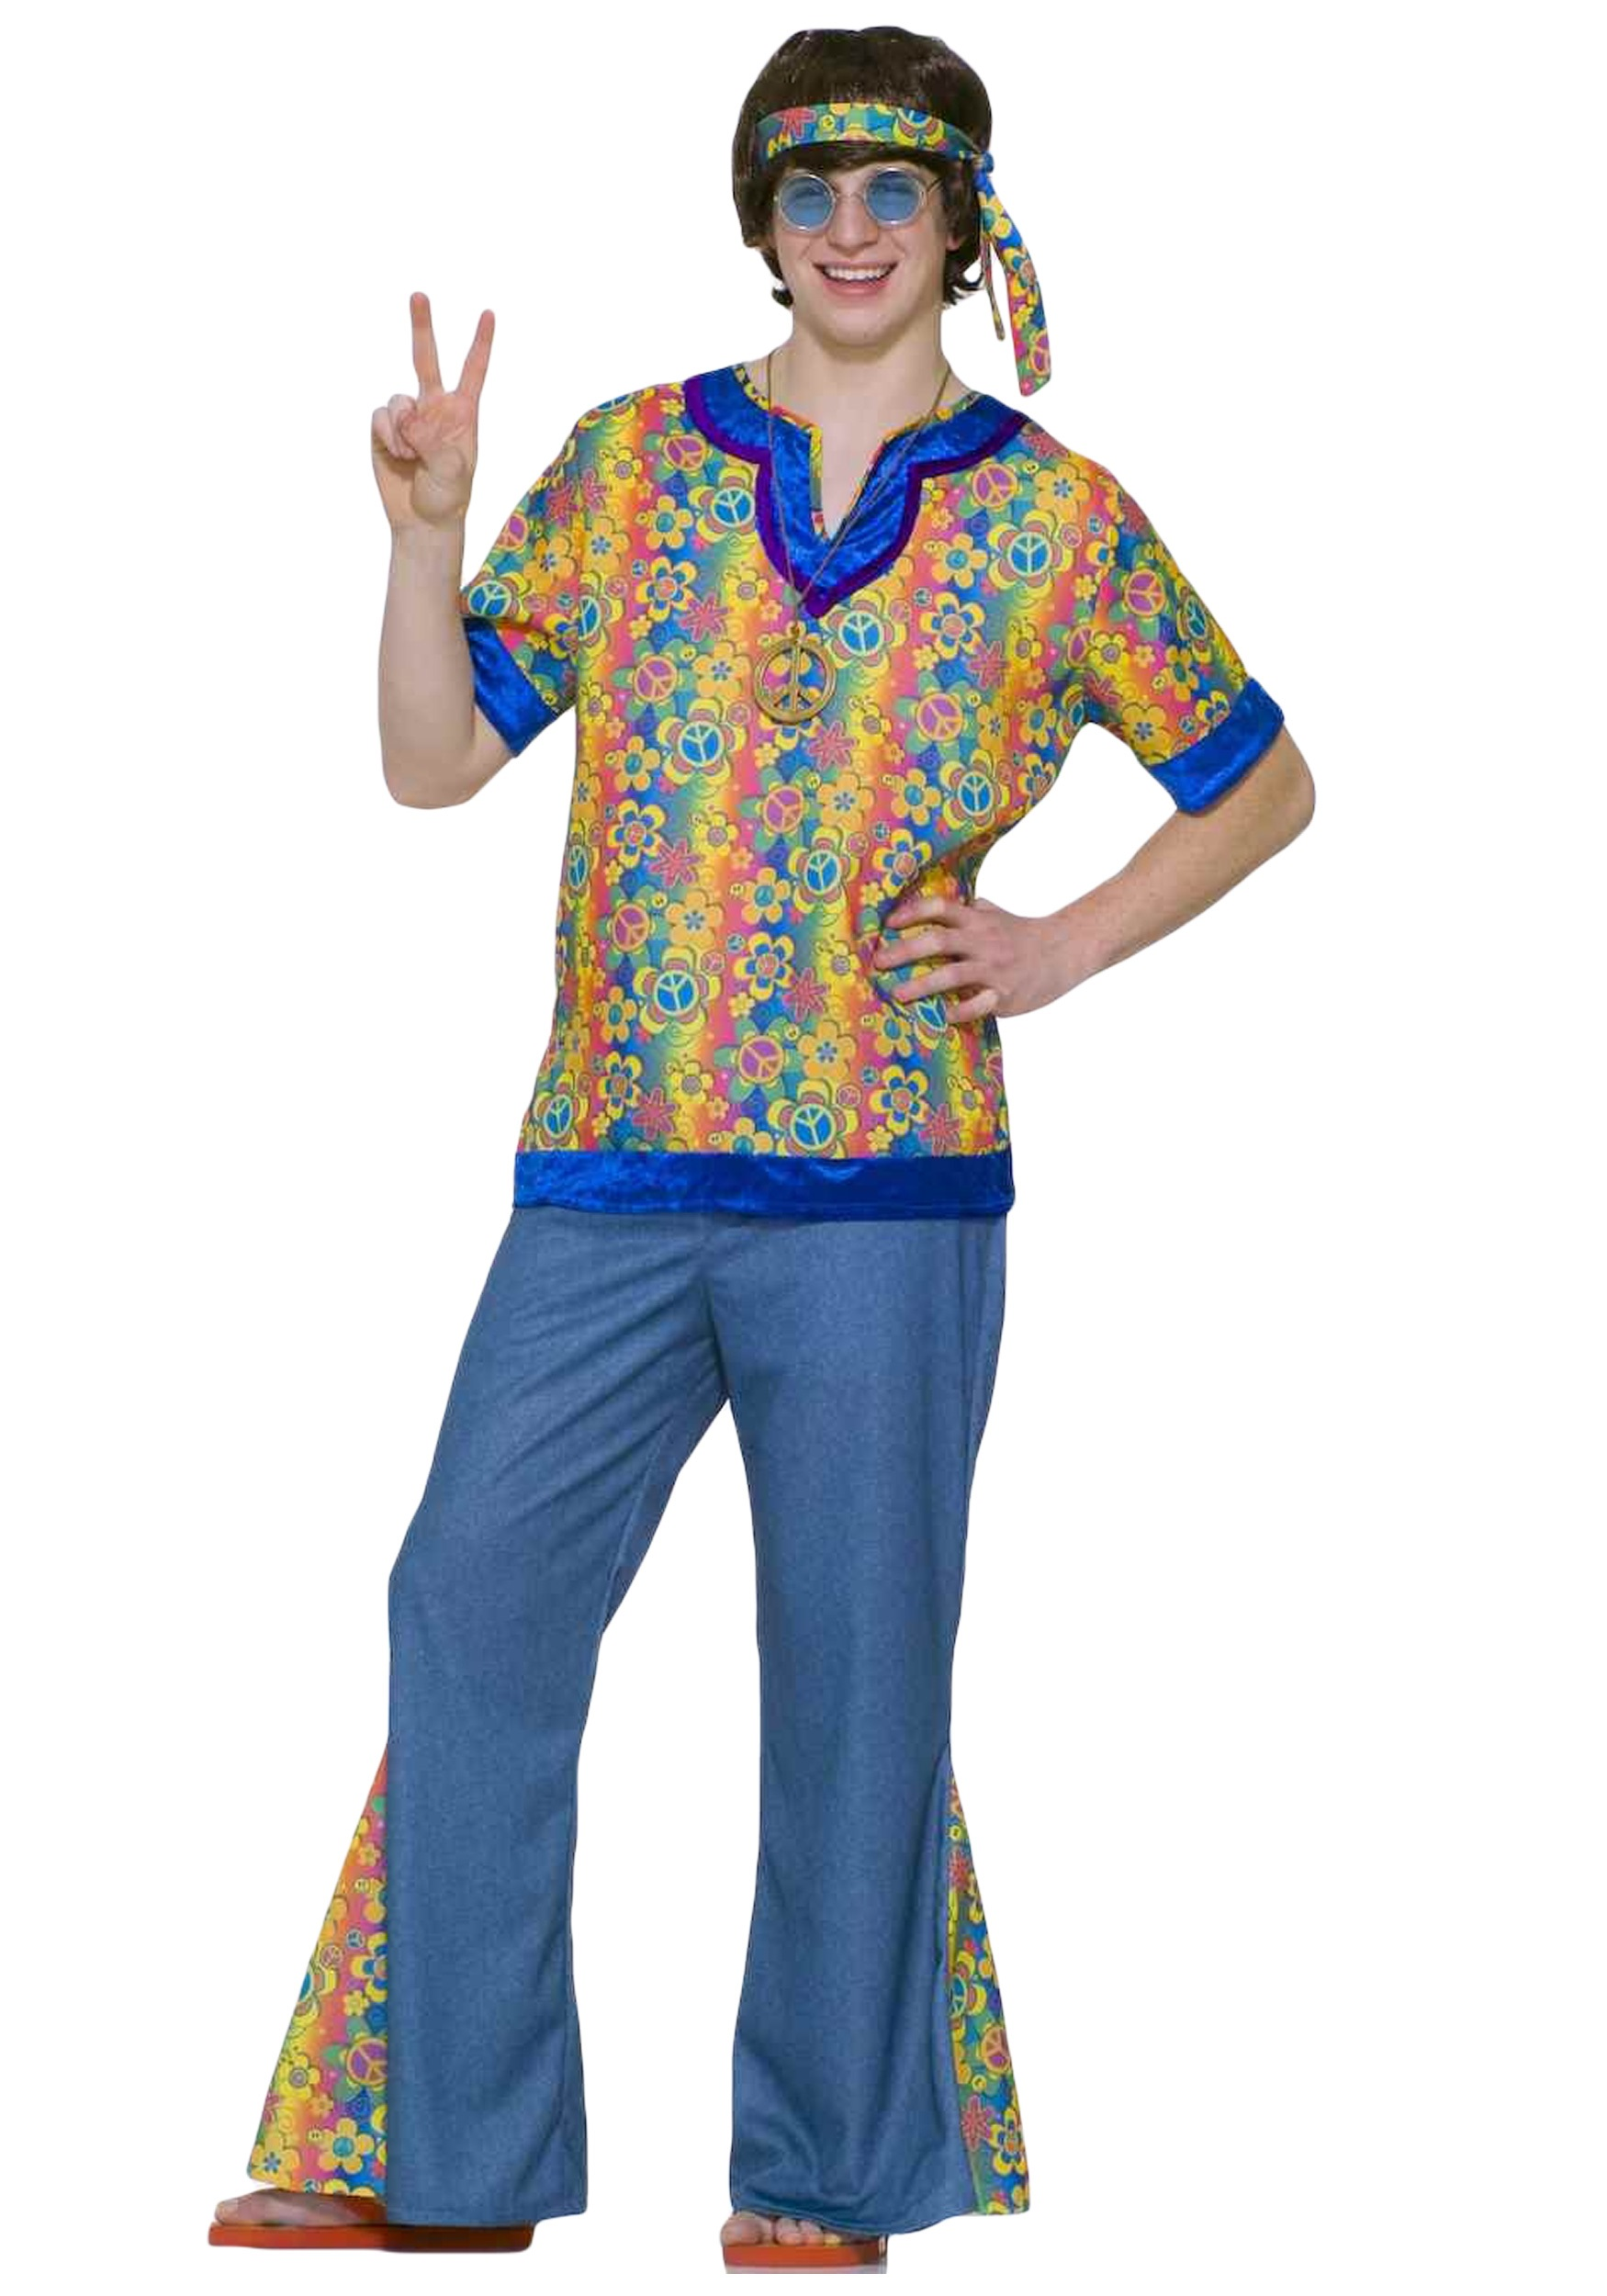 Teen 60s Hippie Costume  sc 1 st  Halloween Costumes & Teen 60s Hippie Costume - Halloween Costumes